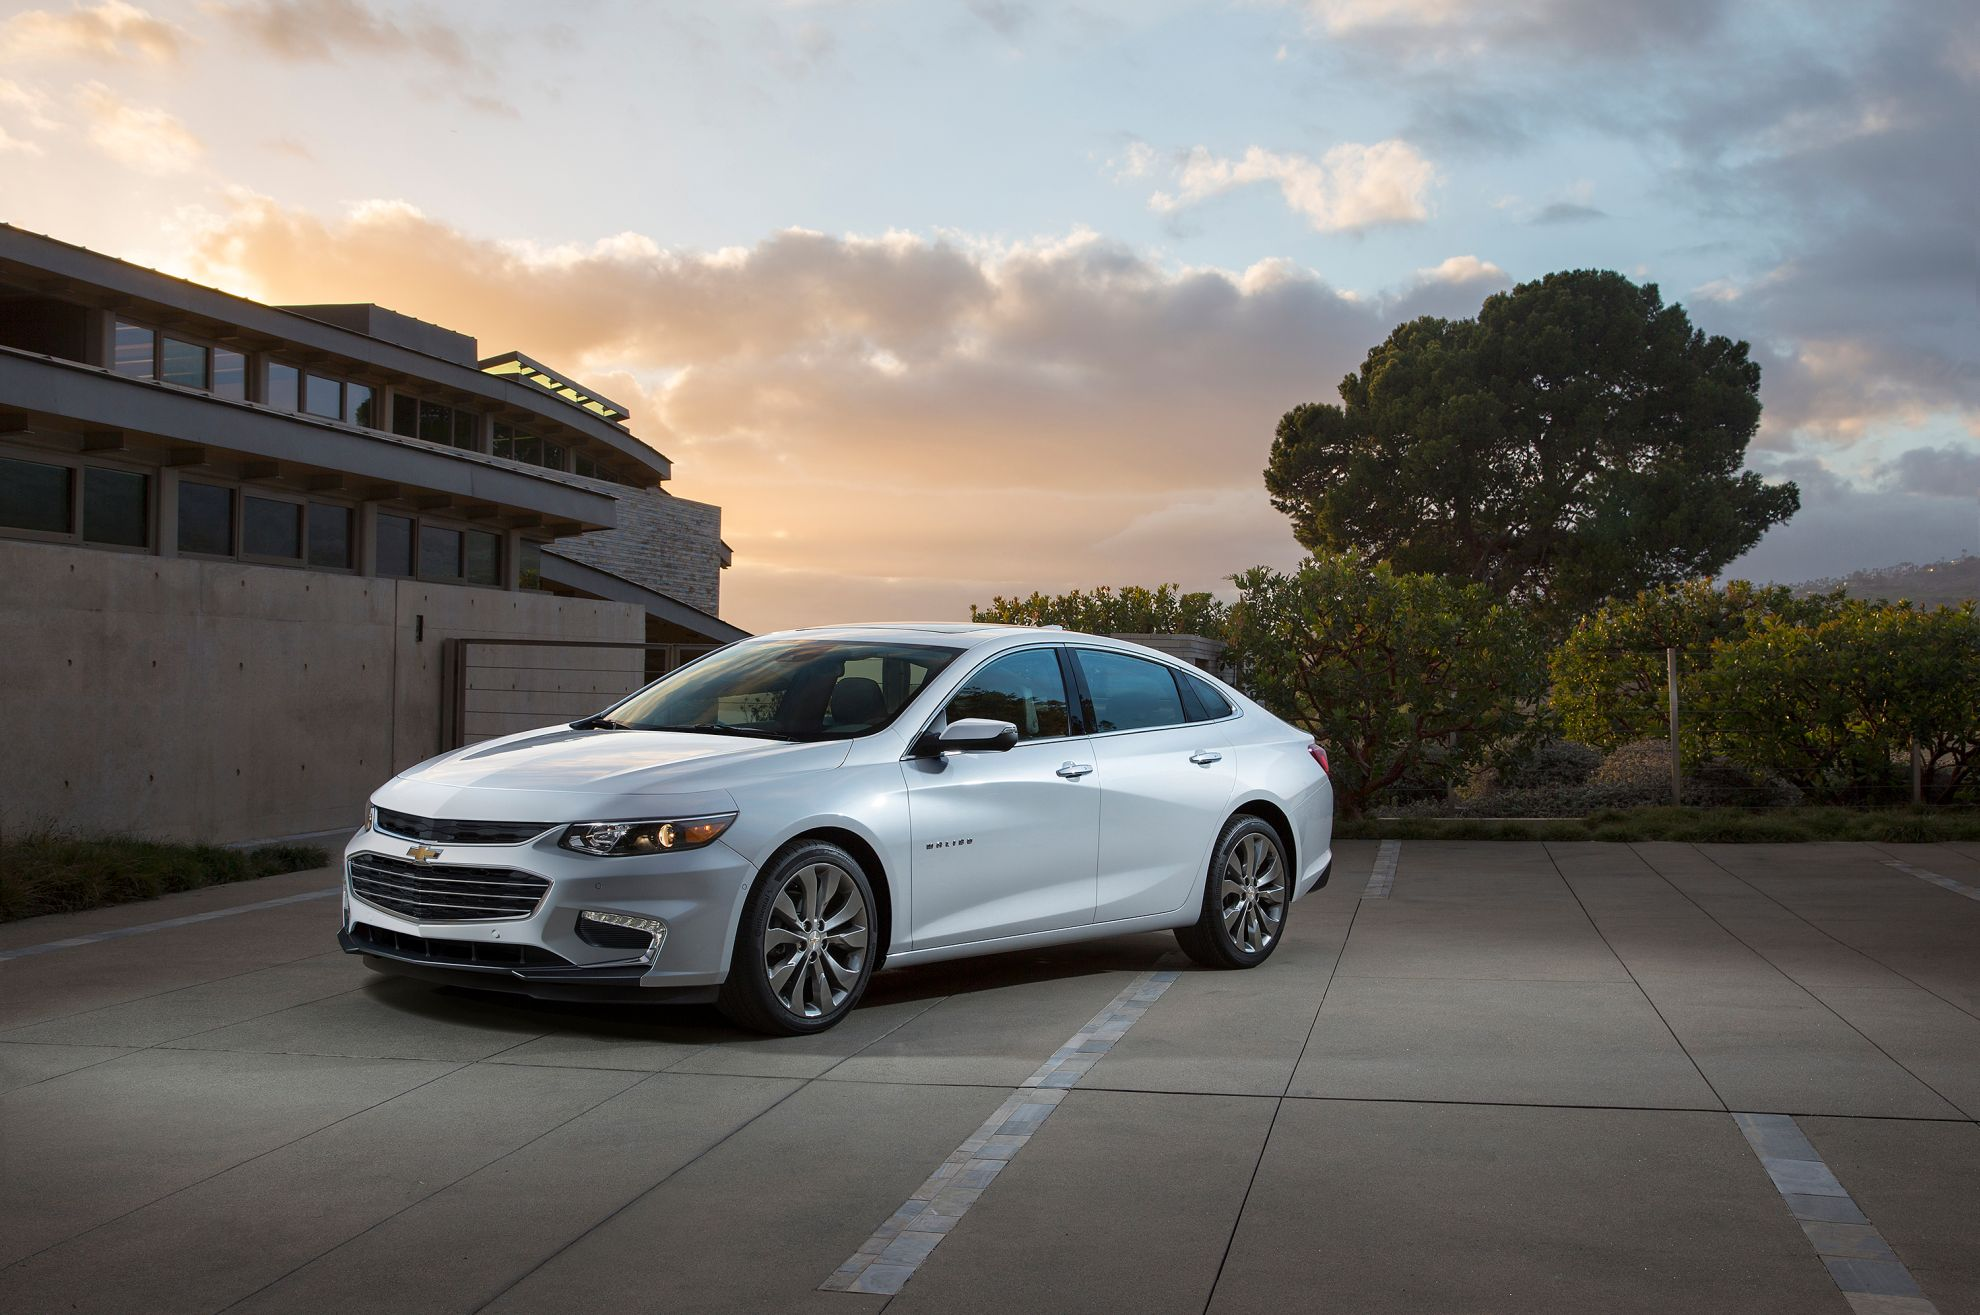 2016-Chevrolet-Malibu-Launched-At-New-York-International-Auto-Show